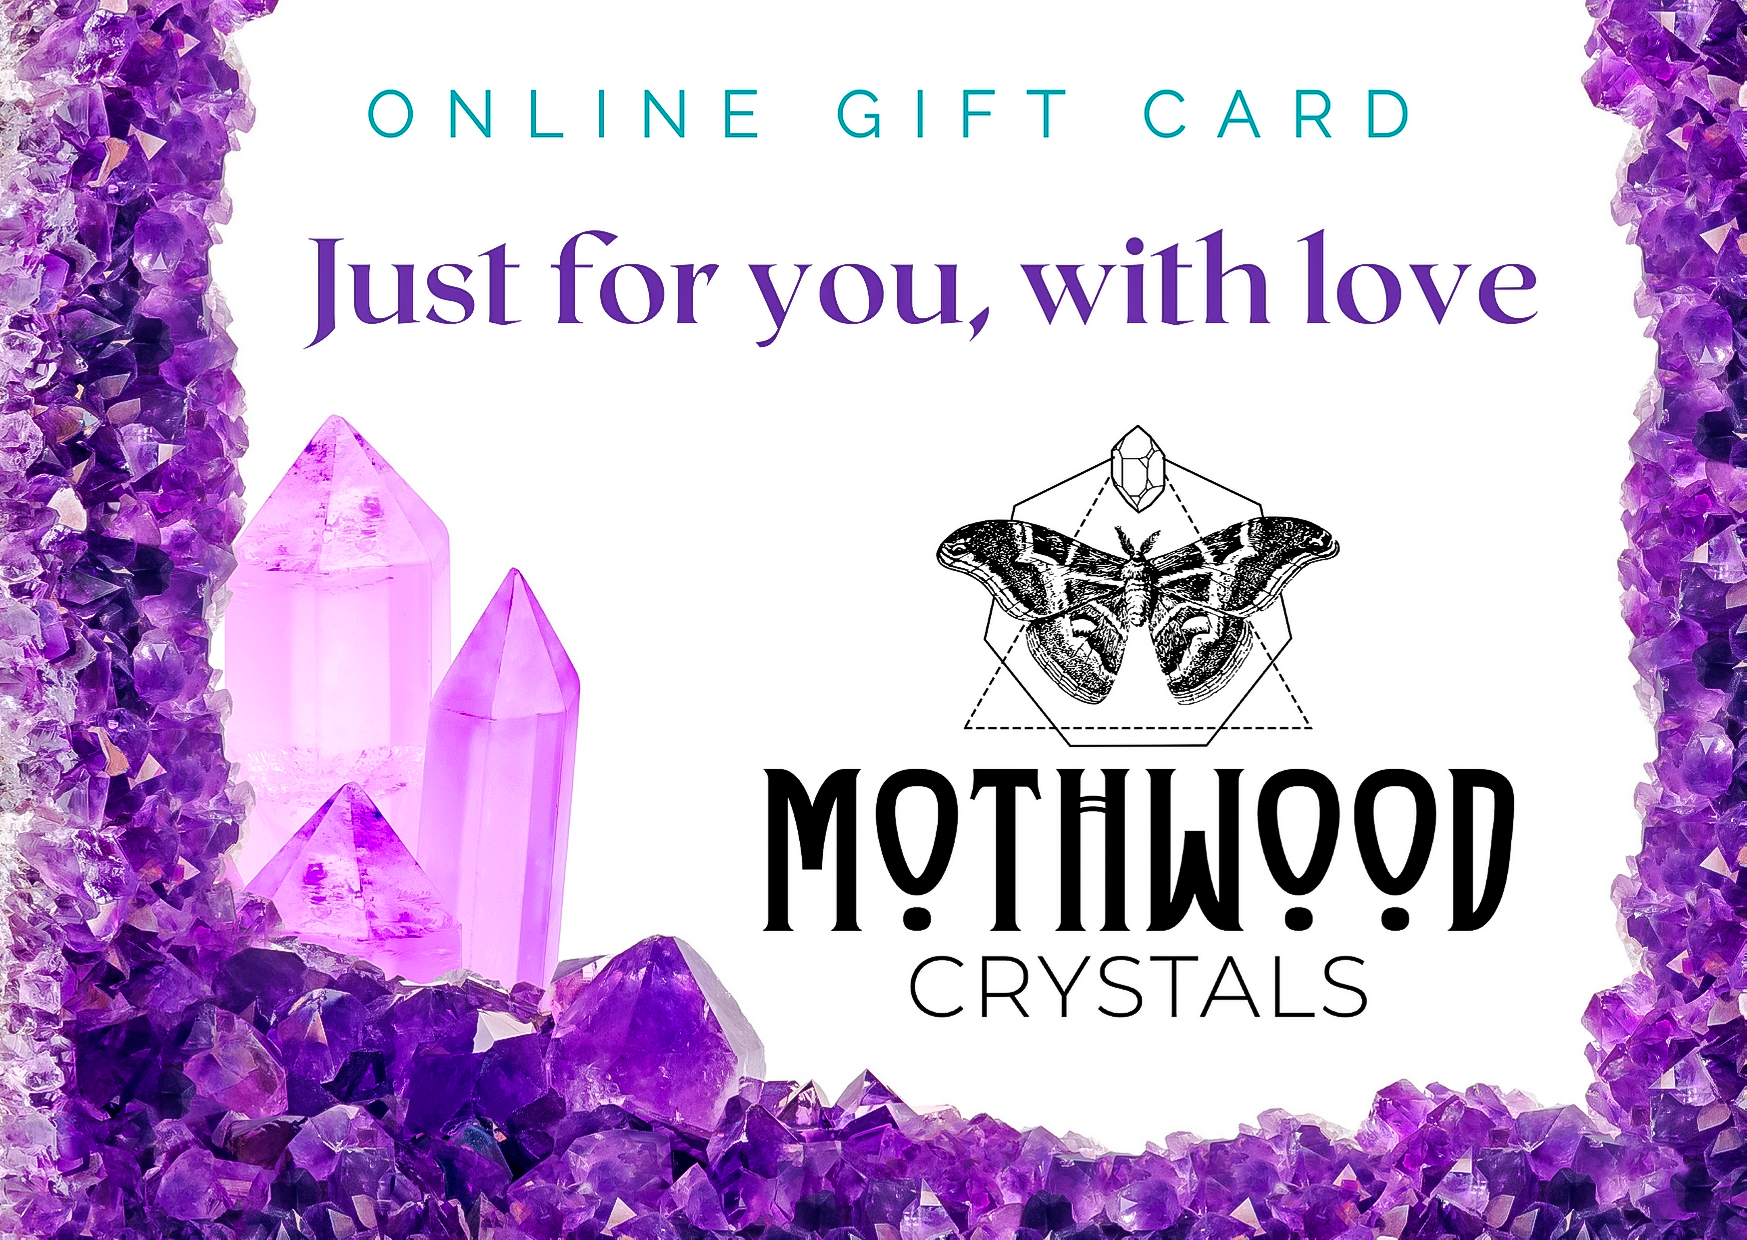 MothWood Crystals E-Gift Cards